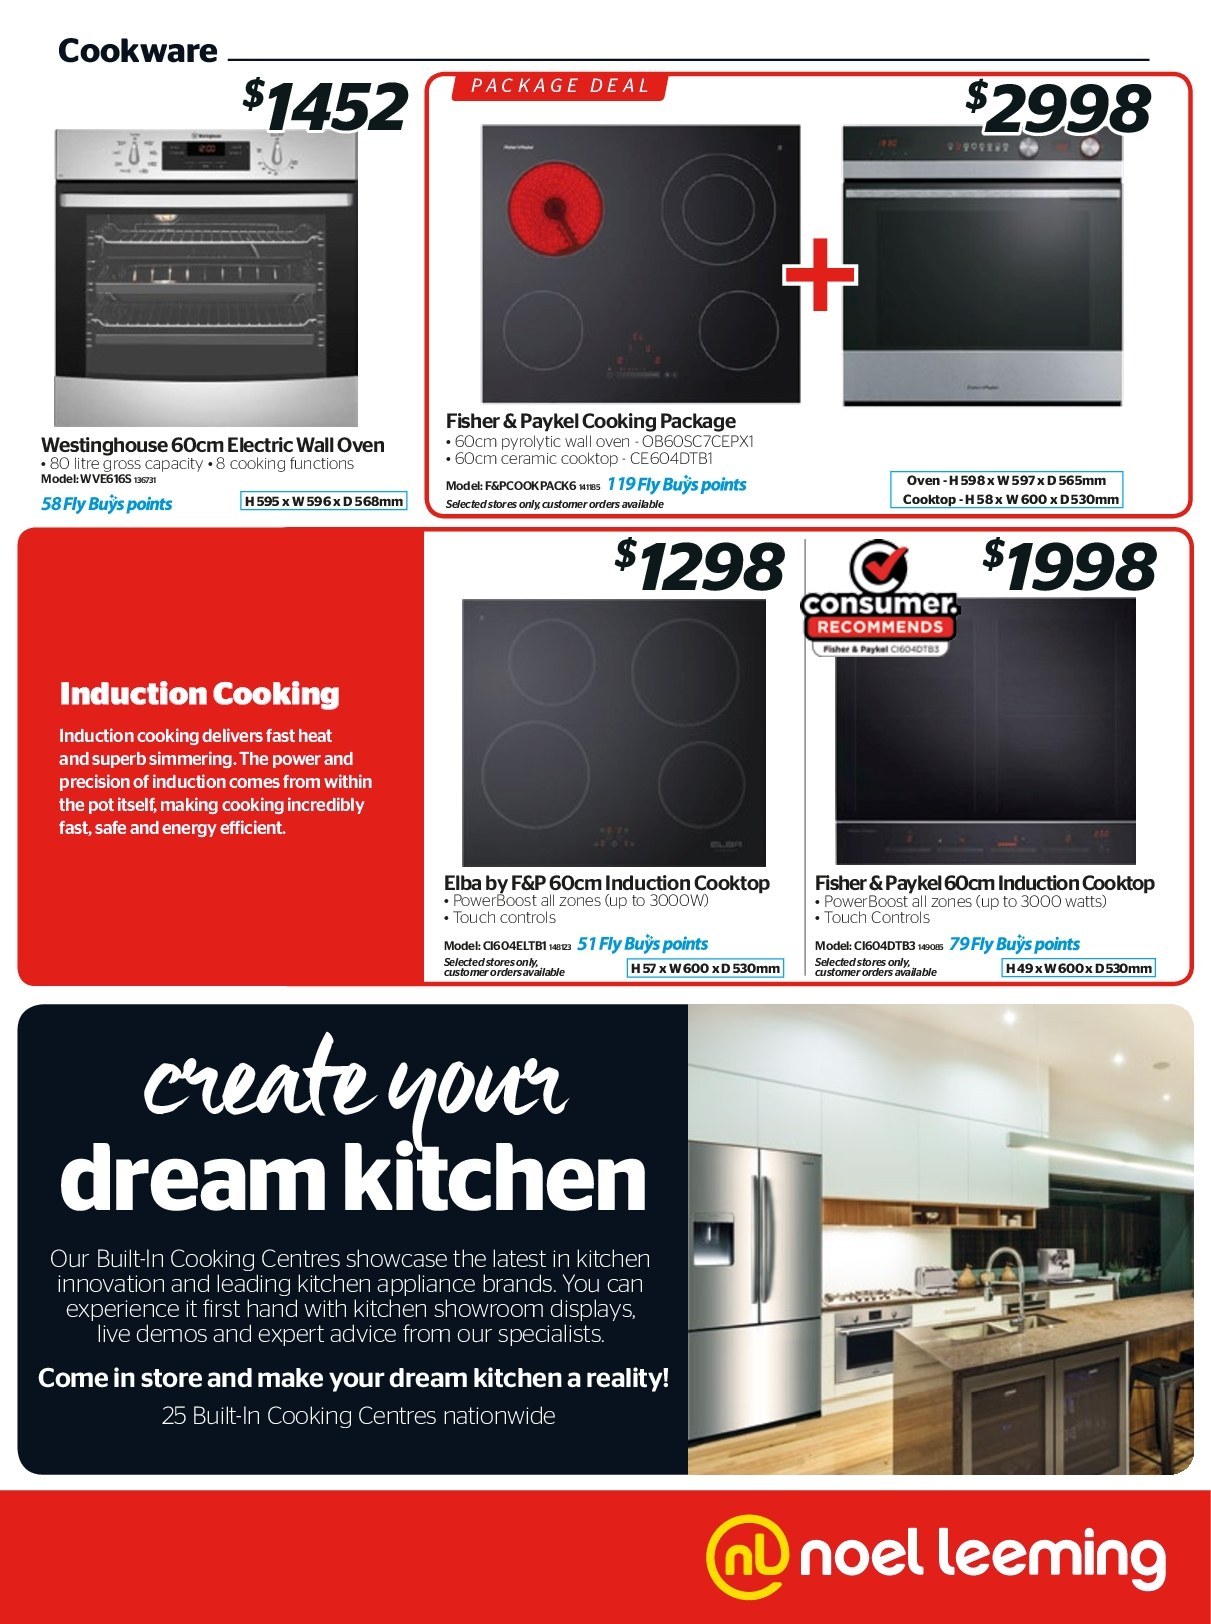 Noel Leeming mailer - 18.04.2018 - 24.04.2018 - Sales products - cooktop, induction cooktop, kitchen, pot, oven. Page 19.